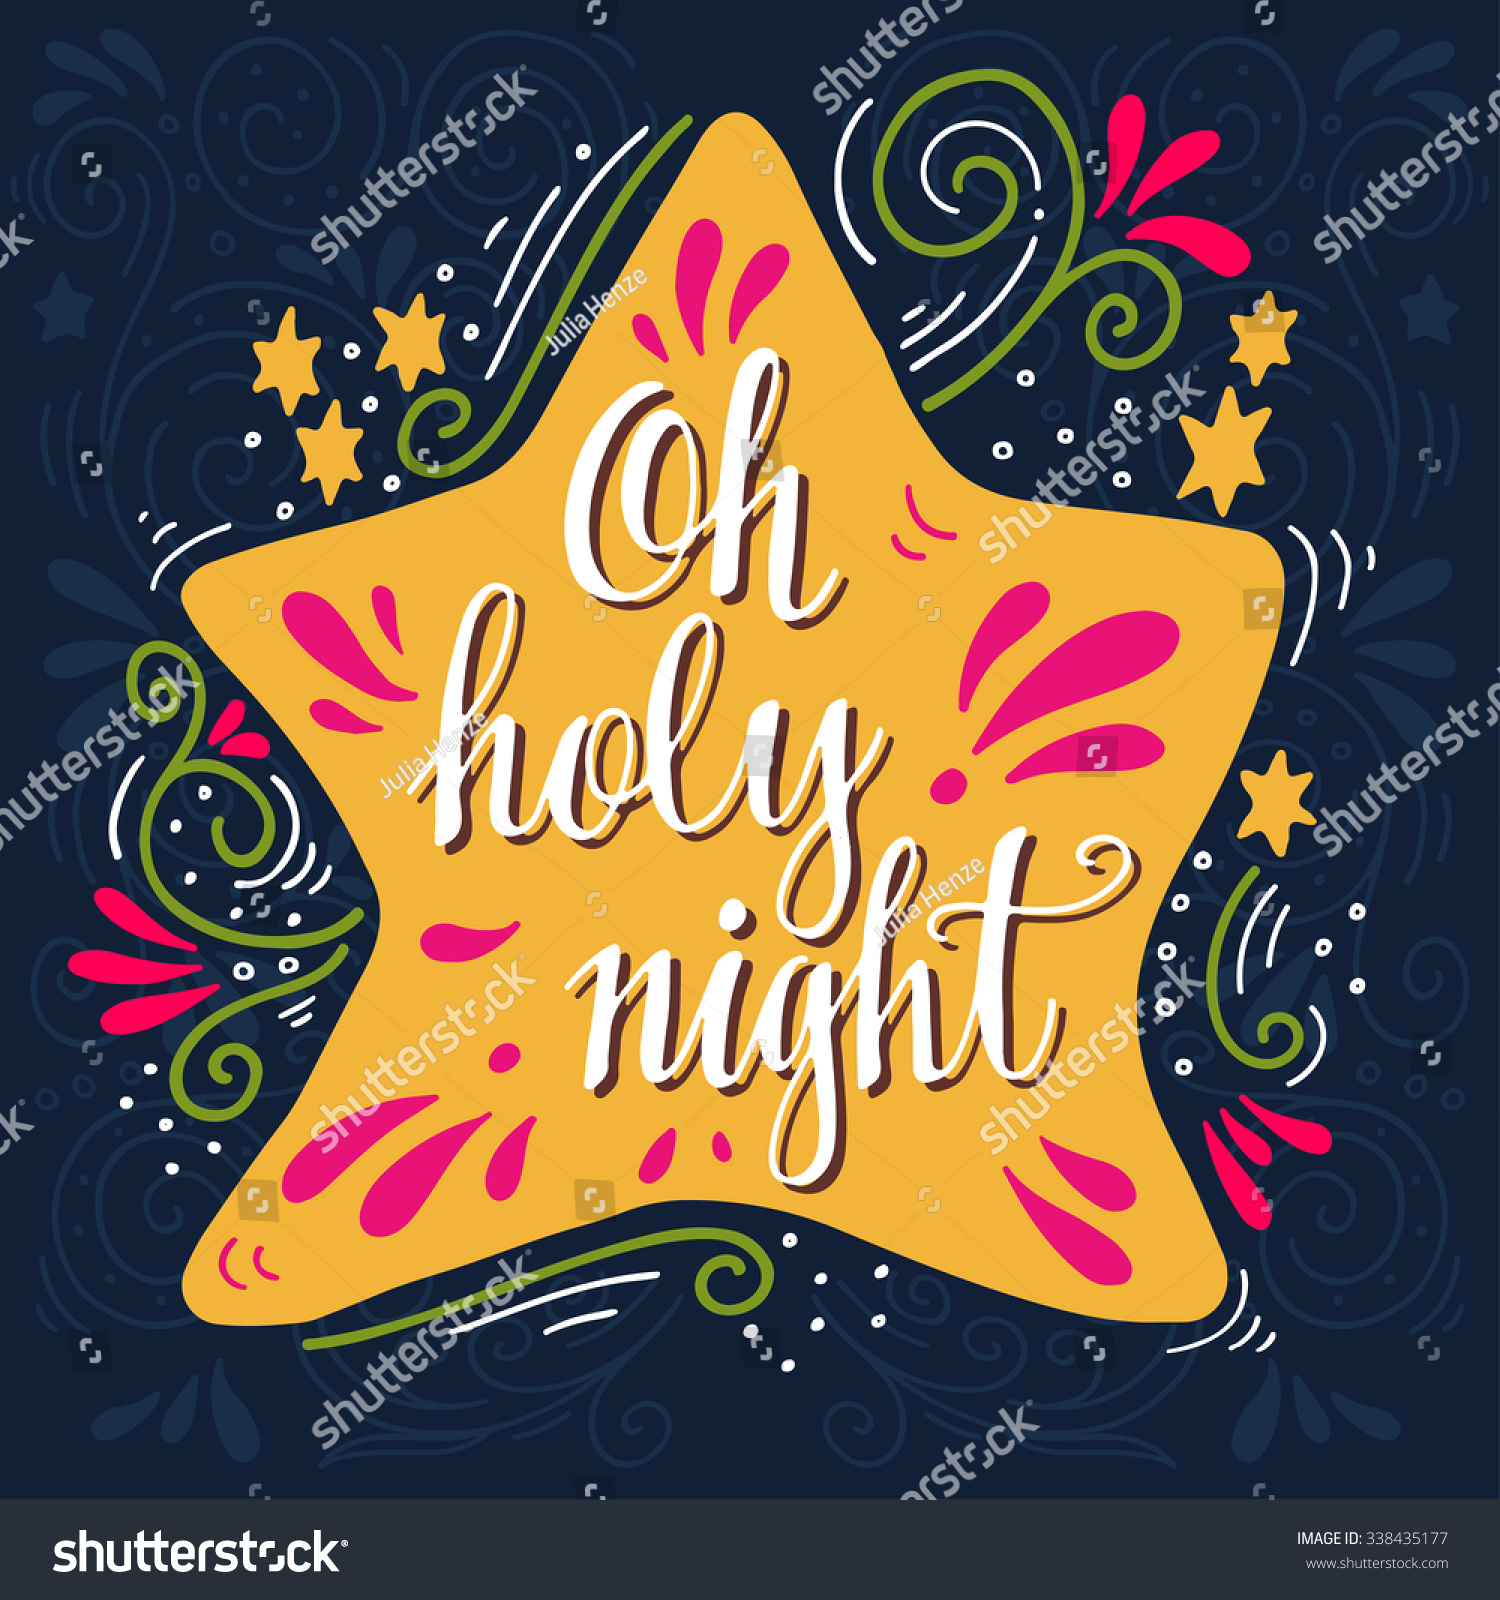 Download Holiday Nazareth Stock Vector Oh Holy Night Winter Holiday Saying